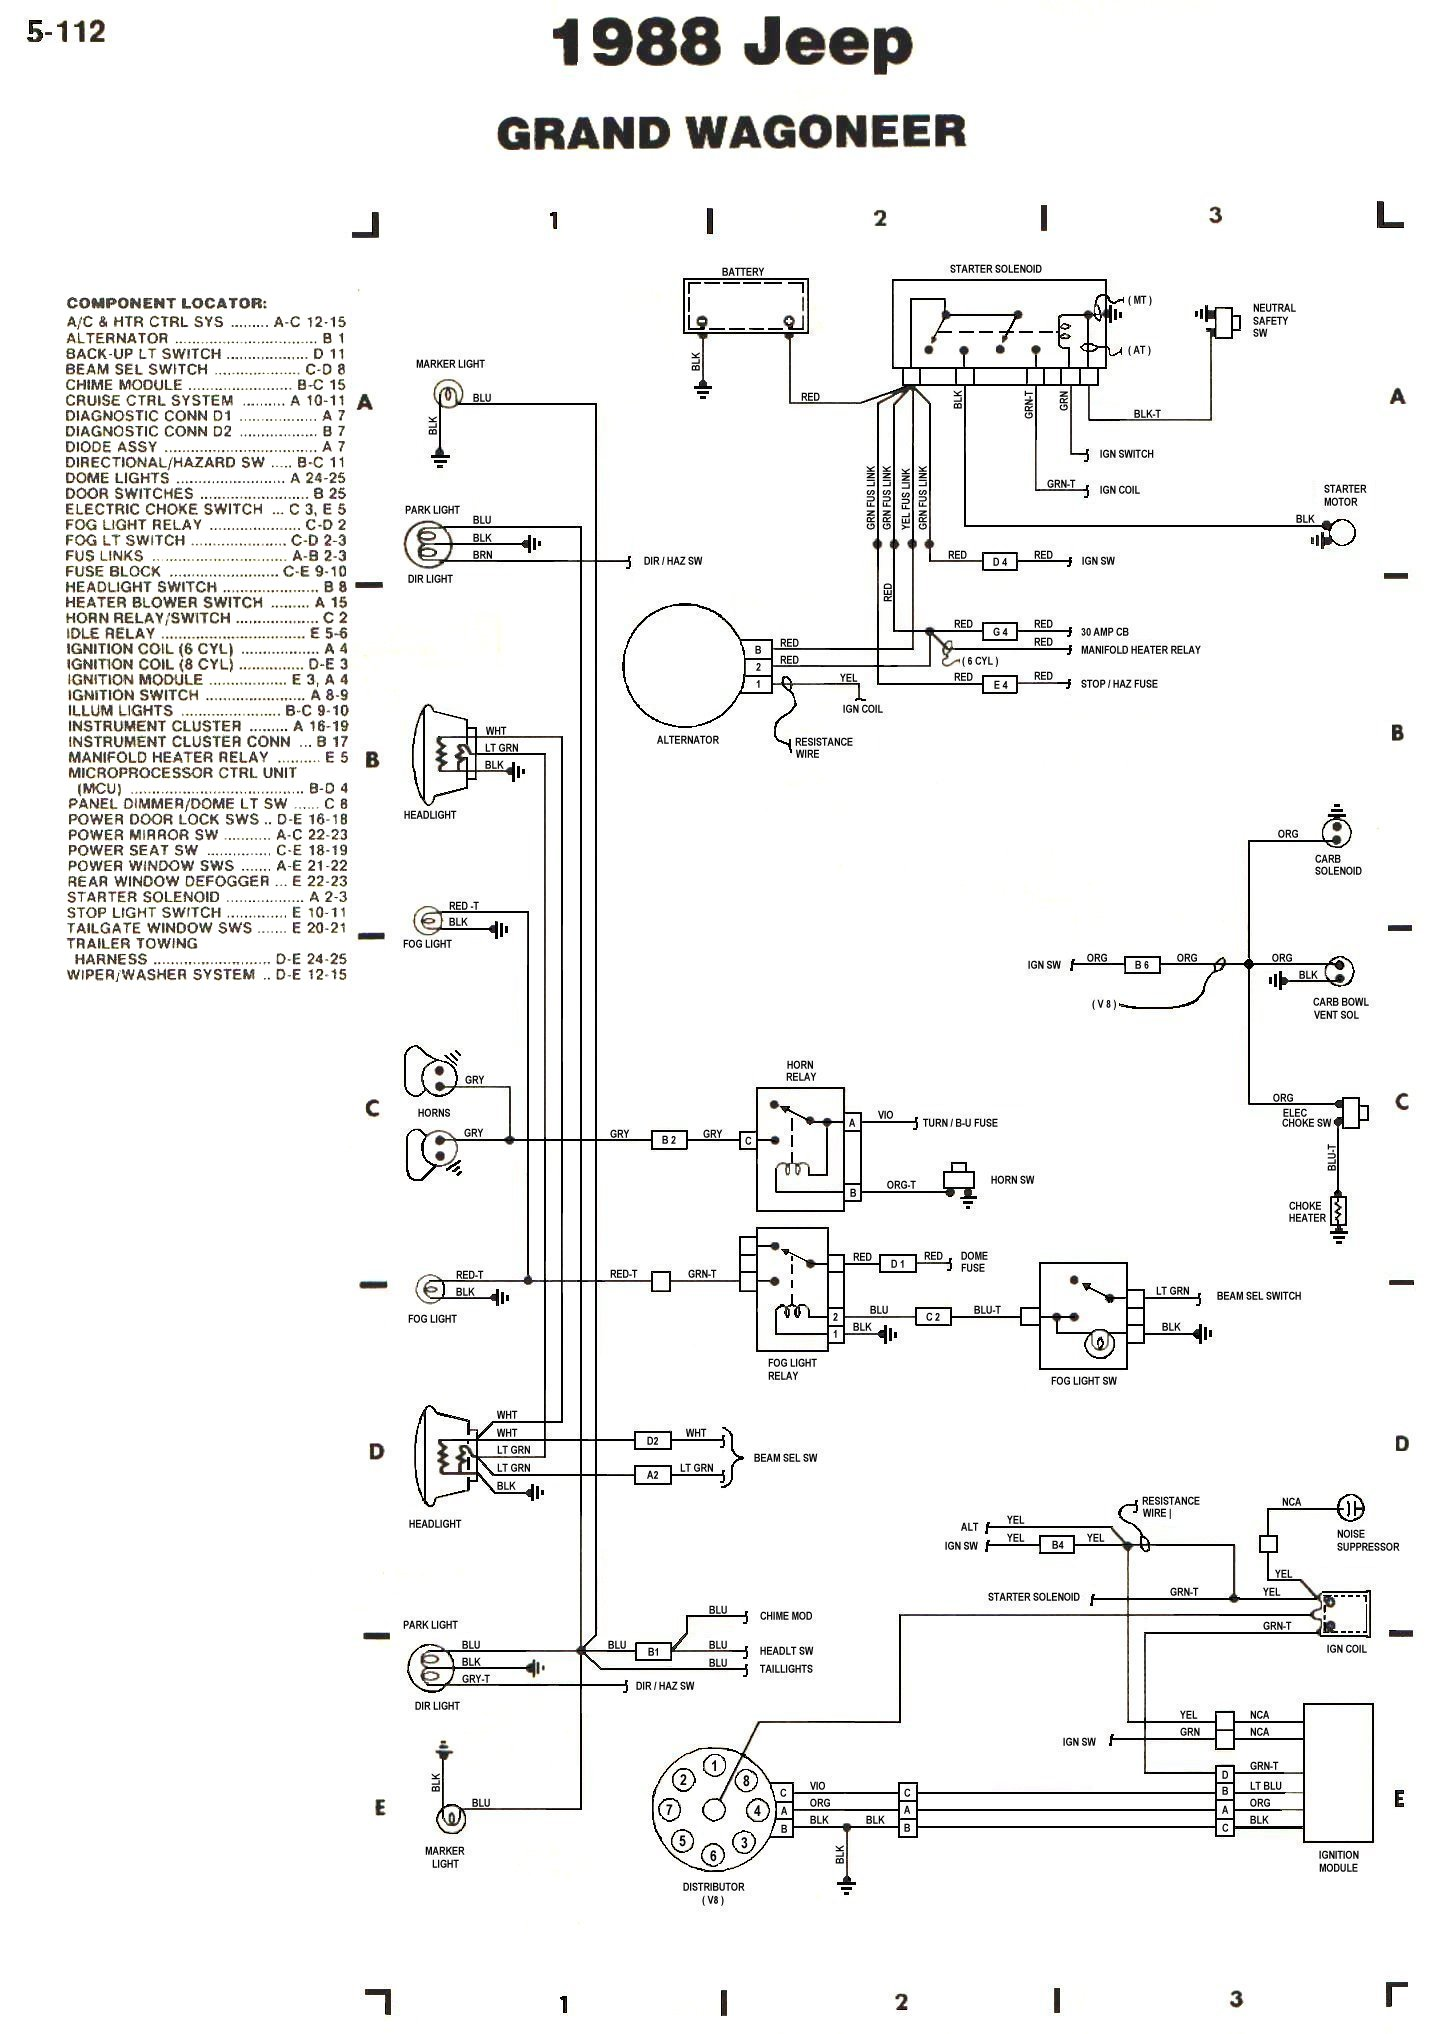 83 jeep cj7 wiring diagram picture